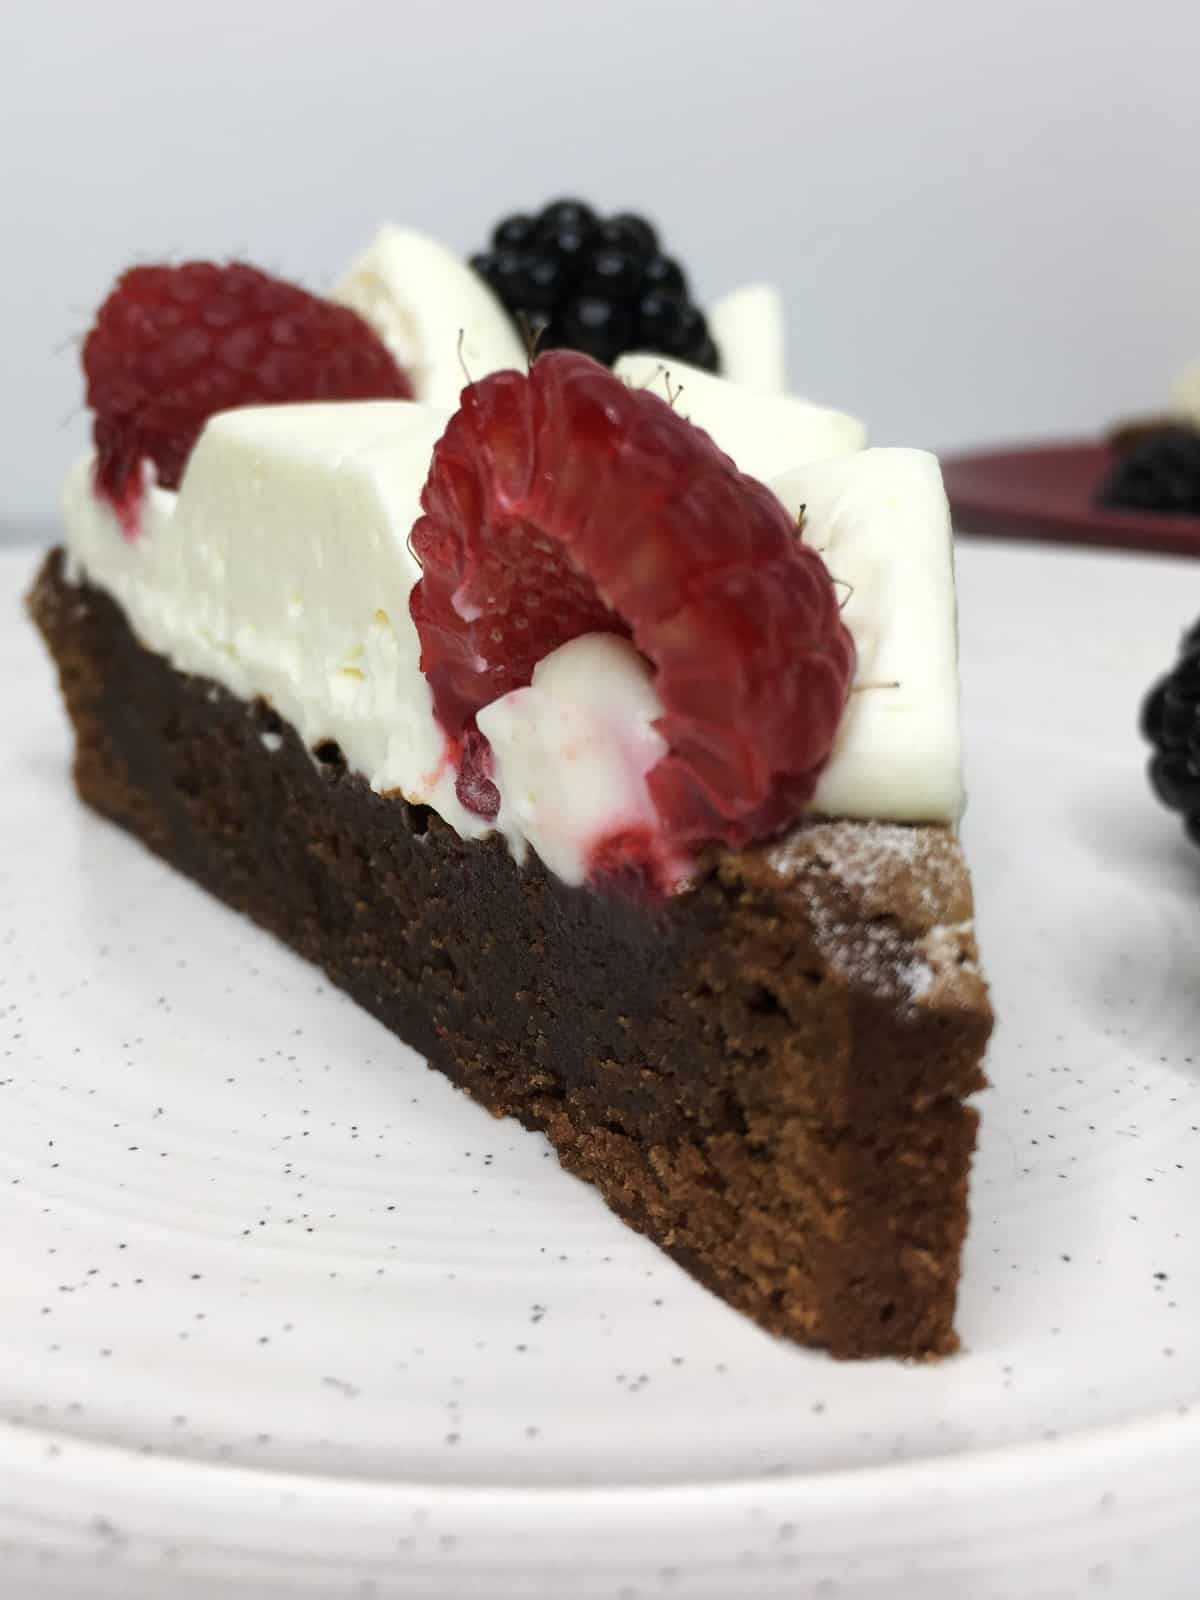 A single brownie slice topped with Chantilly cream and fresh red fruit on a dessert plate